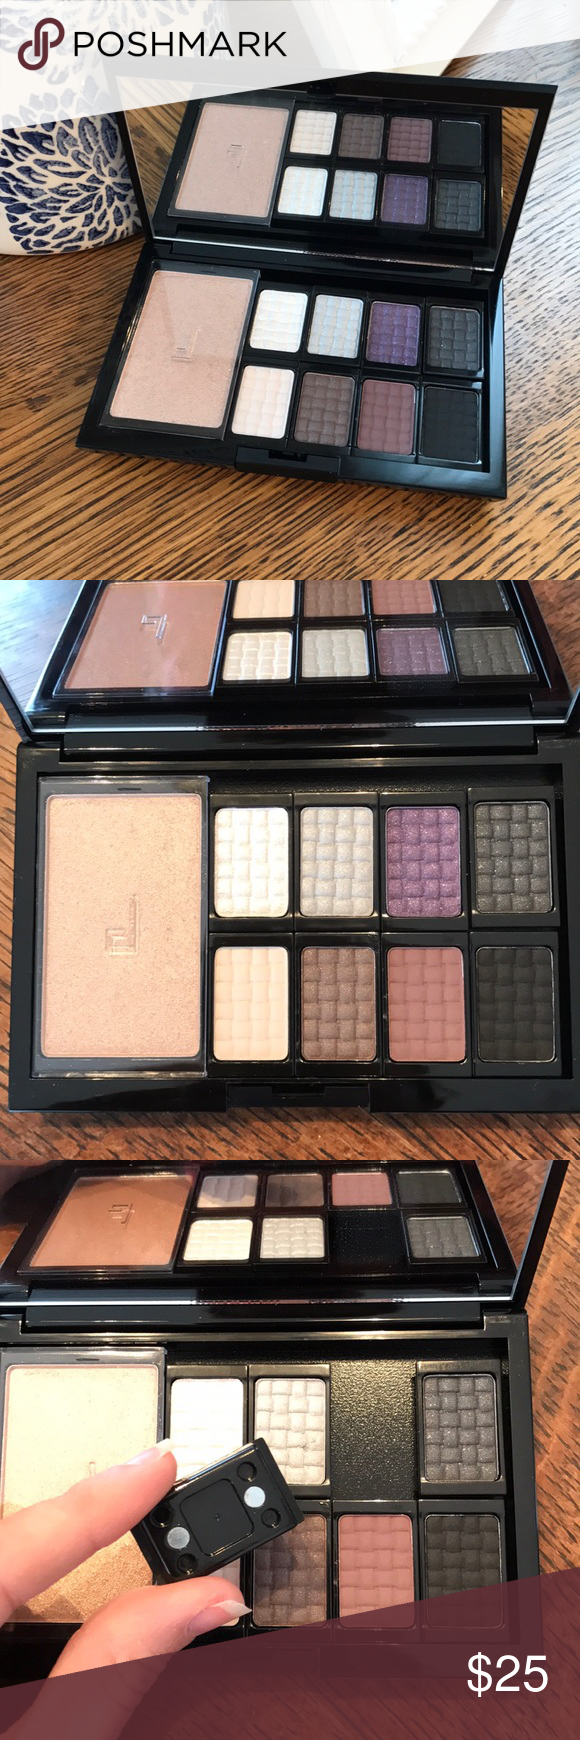 *New in Box* Doucce Eyeshadow Pro Palette Eyeshadow